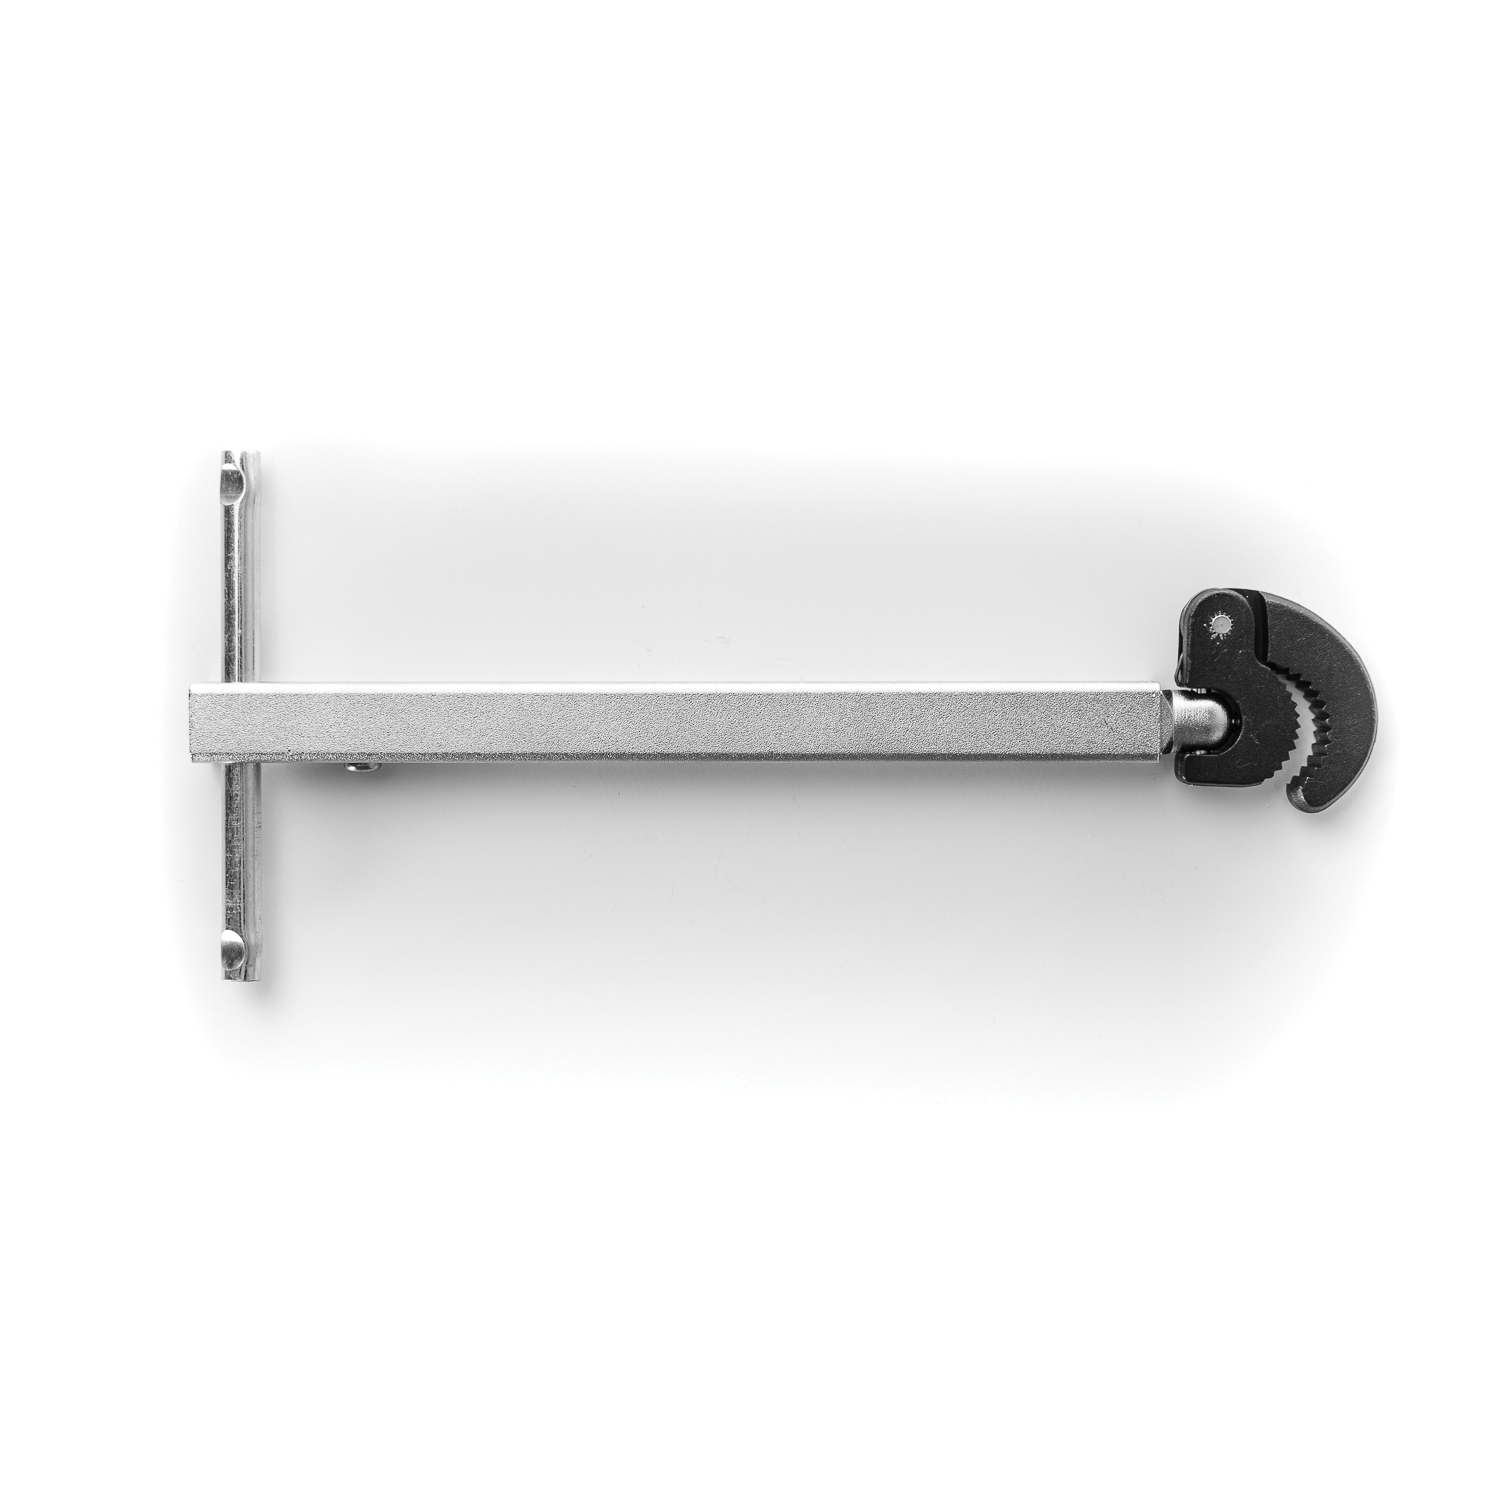 PASCO 4573 Adjustable Telescoping Basin Wrench, 9 to 16 in